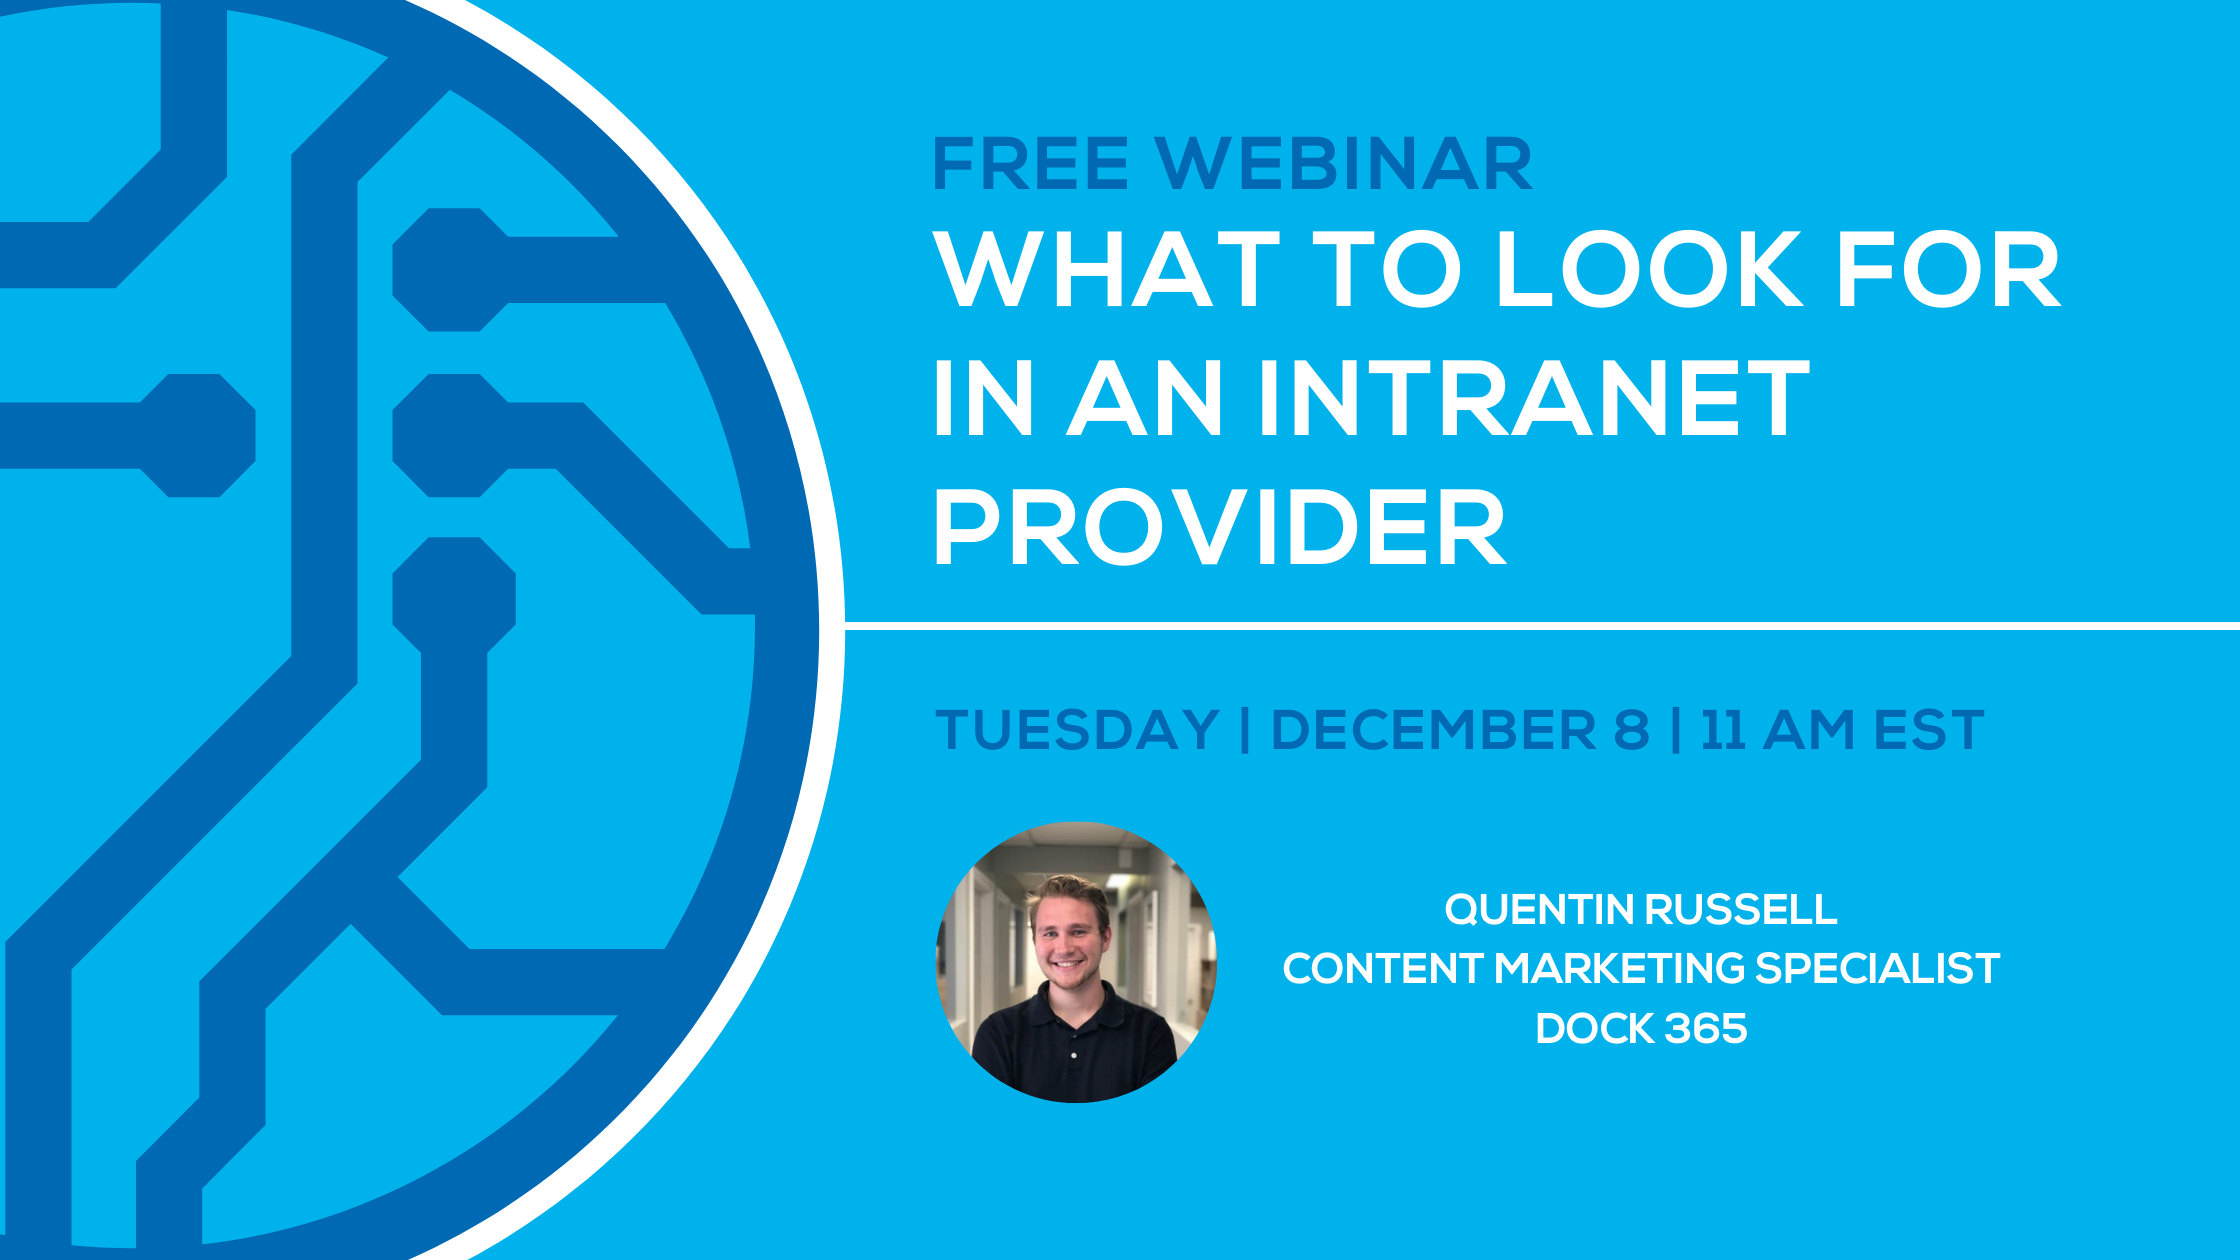 Dock 365 Webinar - What to look for in an intranet provider